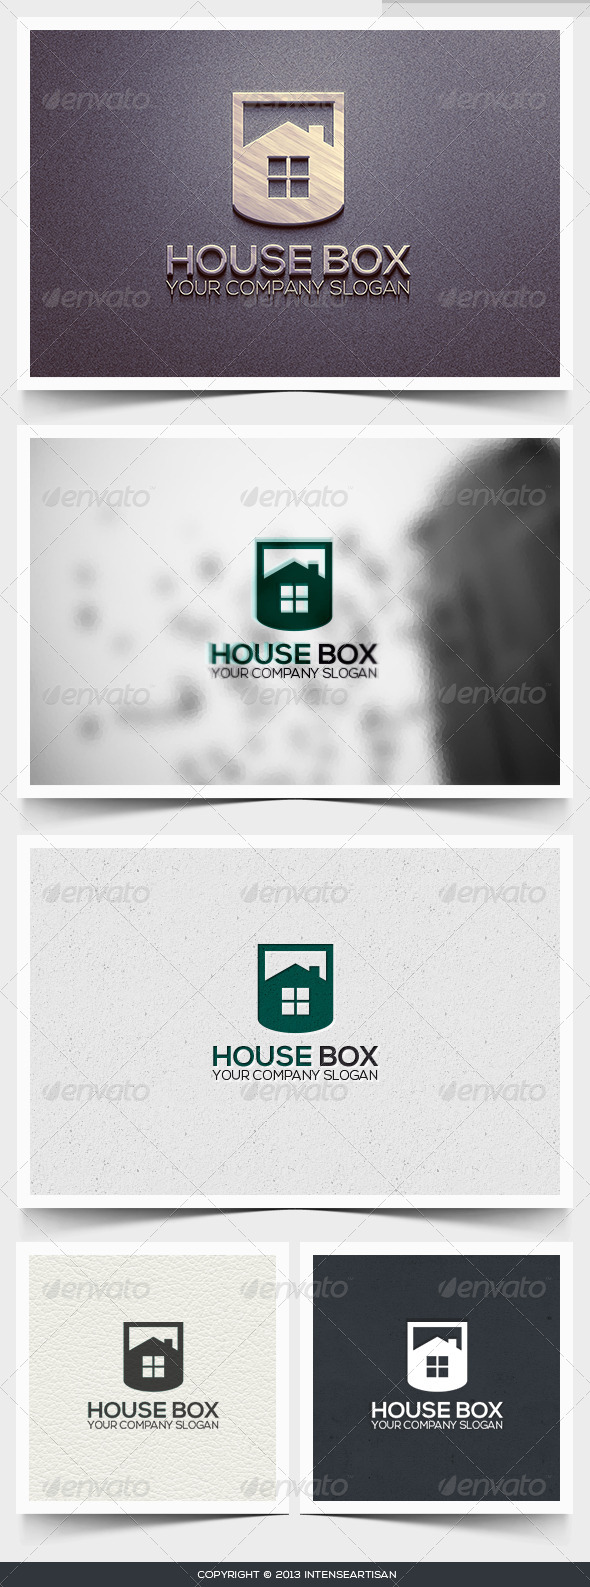 House Box Logo Template - Buildings Logo Templates